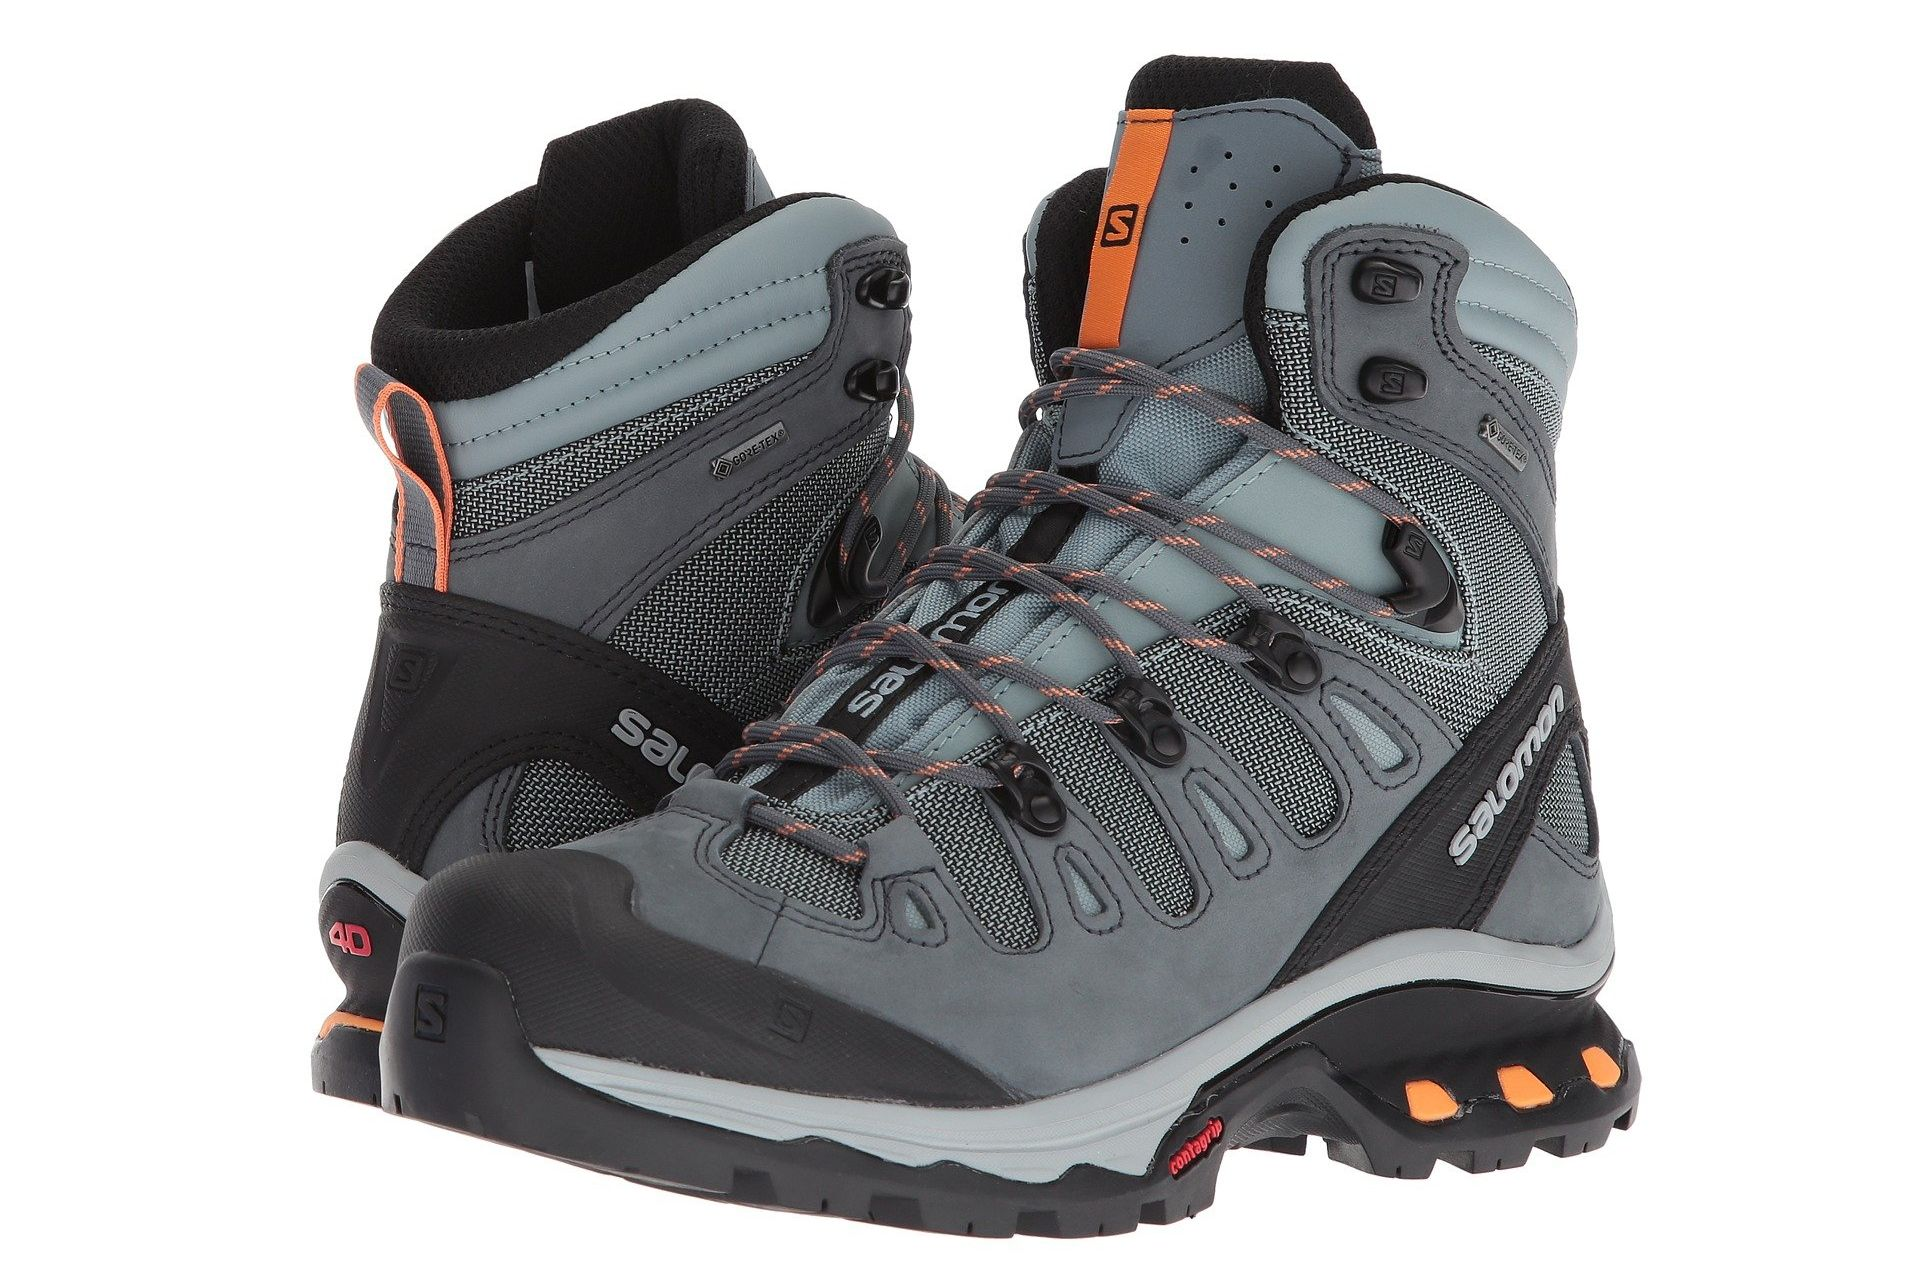 Best Hiking Boots - Hiking Boot Reviews 2019 a378d2f48731